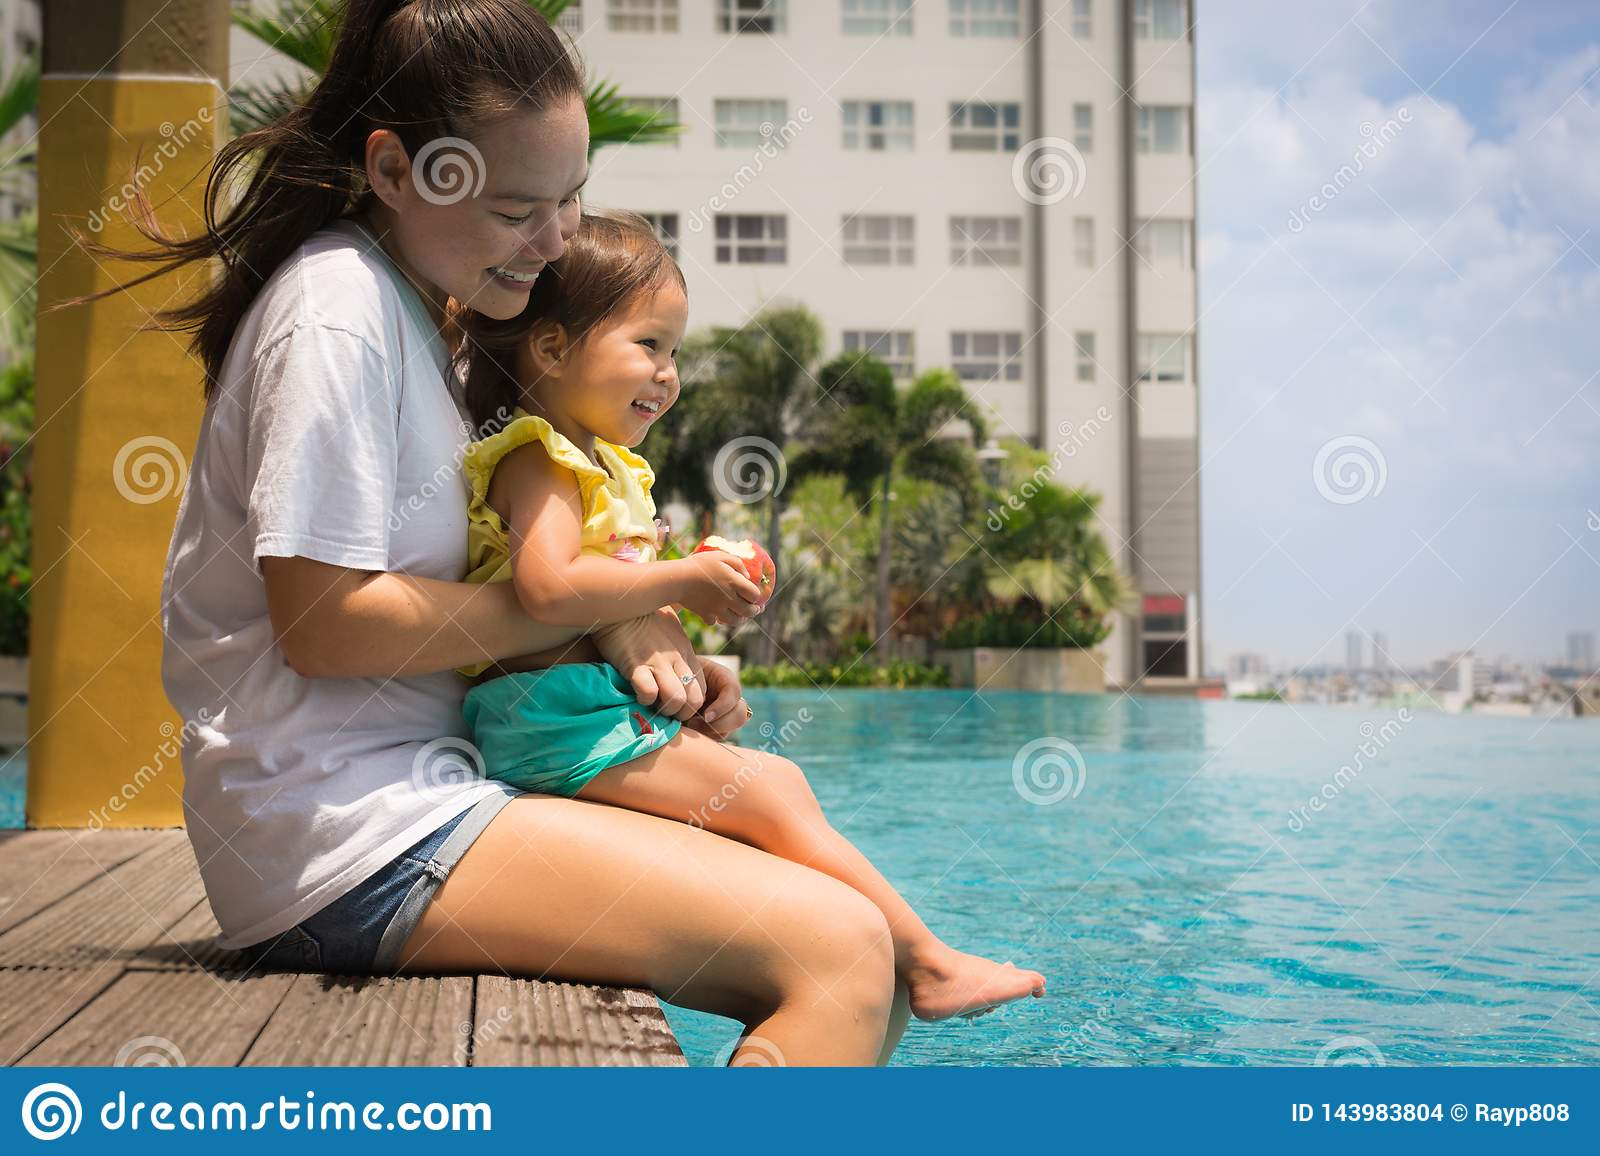 Fun family pool time with mother and child. Vacation time